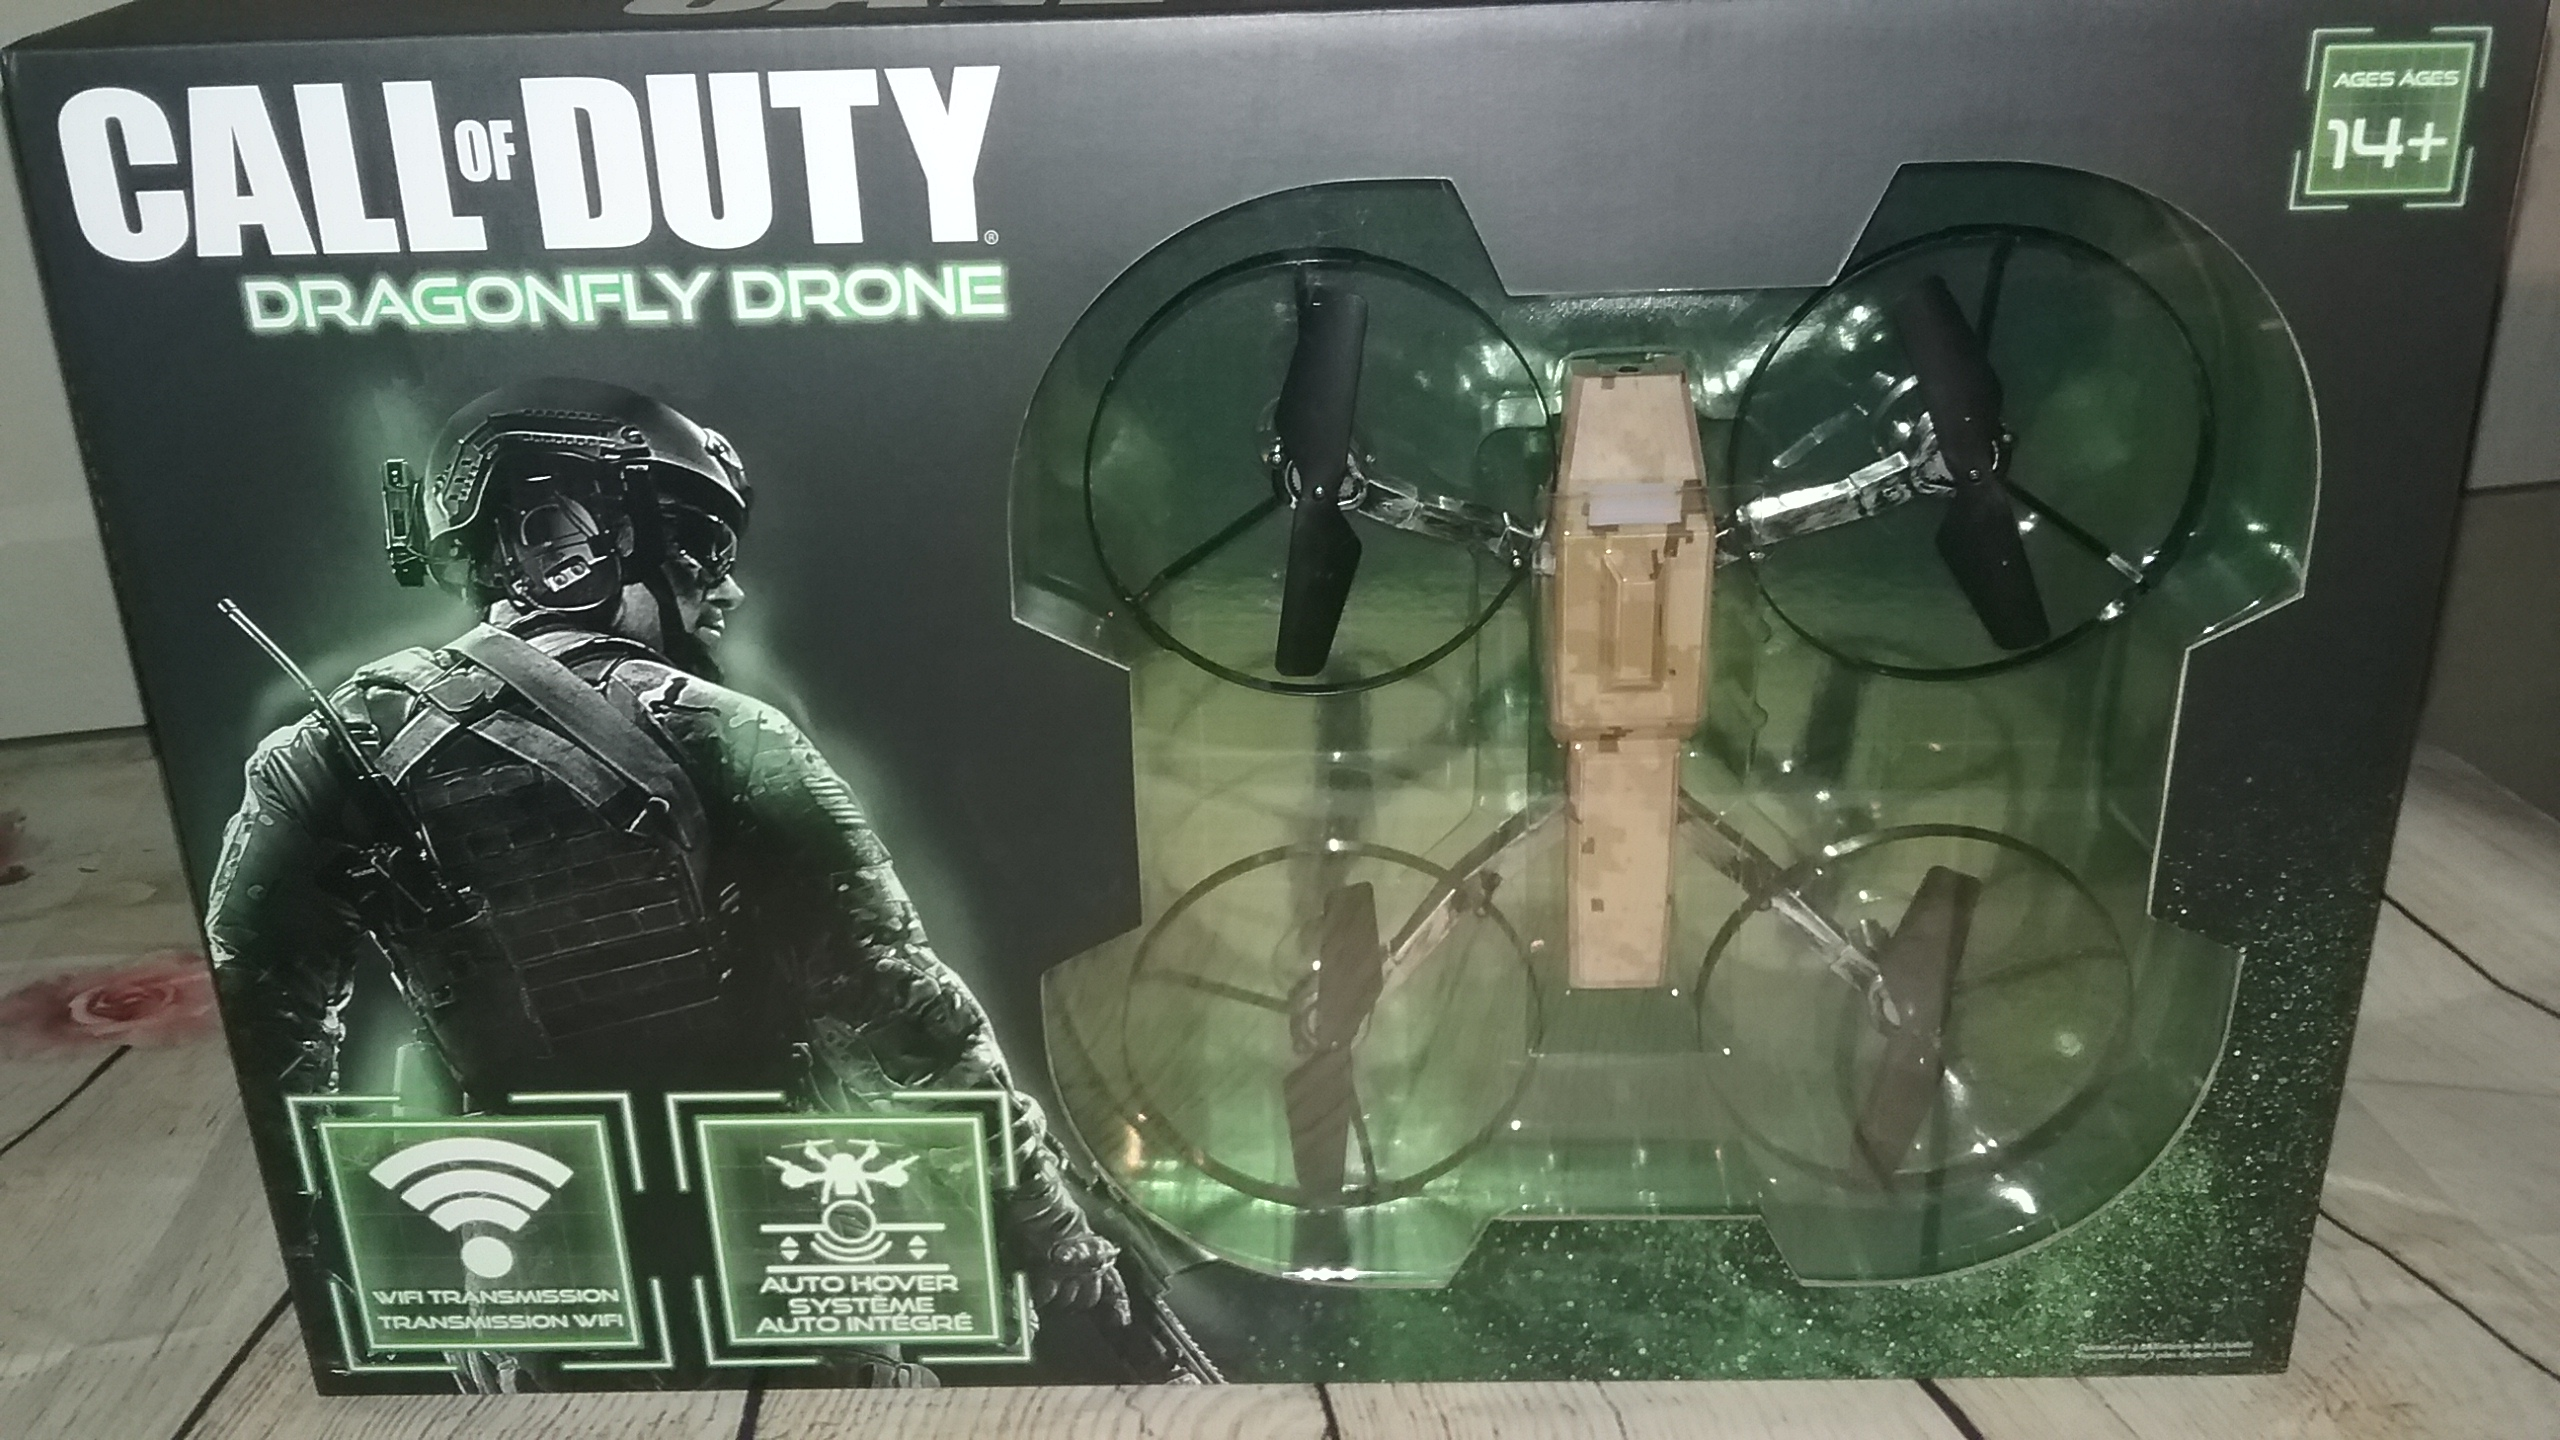 flying drone toy with 2016 Holiday Guide Featuring Call Of Duty Drone  The Dragonfly Drone on Aircraft also Fbi Man In Connecticut Plotted To Fly Drone Like Toy Planes With Bombs Into School likewise Accessories Parachutes Rescue Systems C 199 126 also Pink Teddy Bear likewise 2016 Holiday Guide Featuring Call Of Duty Drone  the Dragonfly Drone.